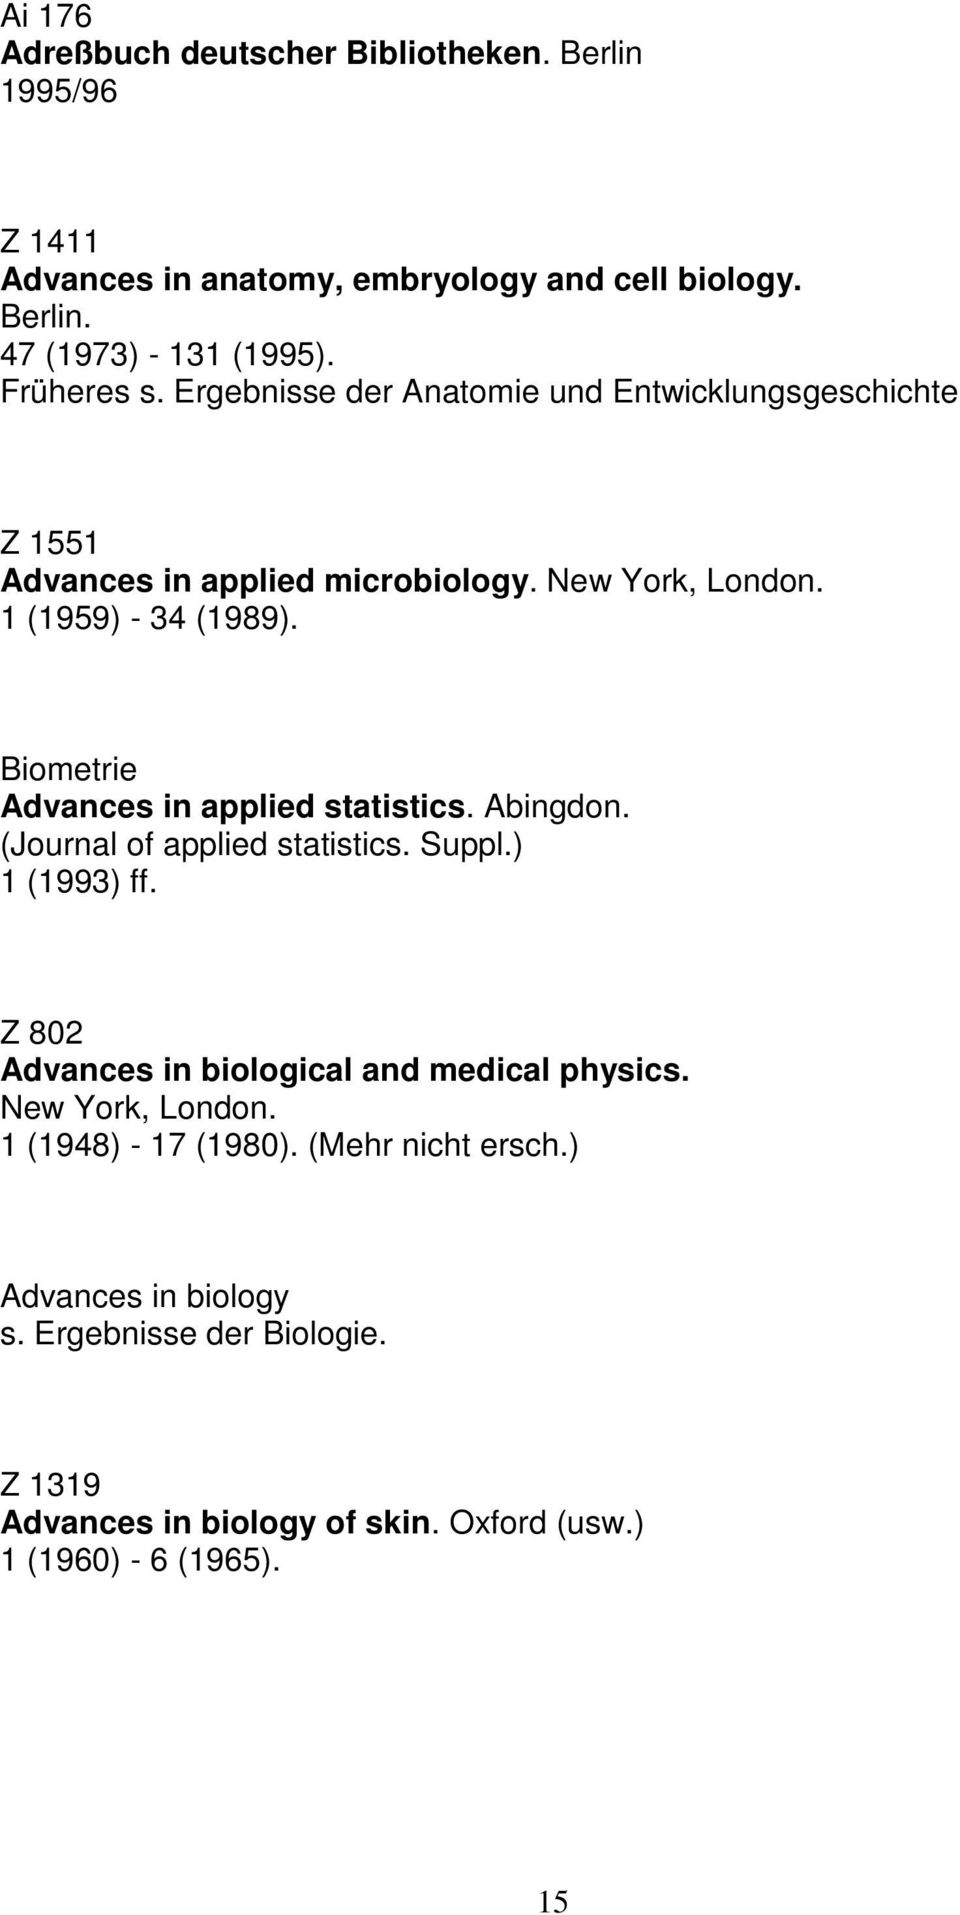 Biometrie Advances in applied statistics. Abingdon. (Journal of applied statistics. Suppl.) 1 (1993) ff. Z 802 Advances in biological and medical physics.